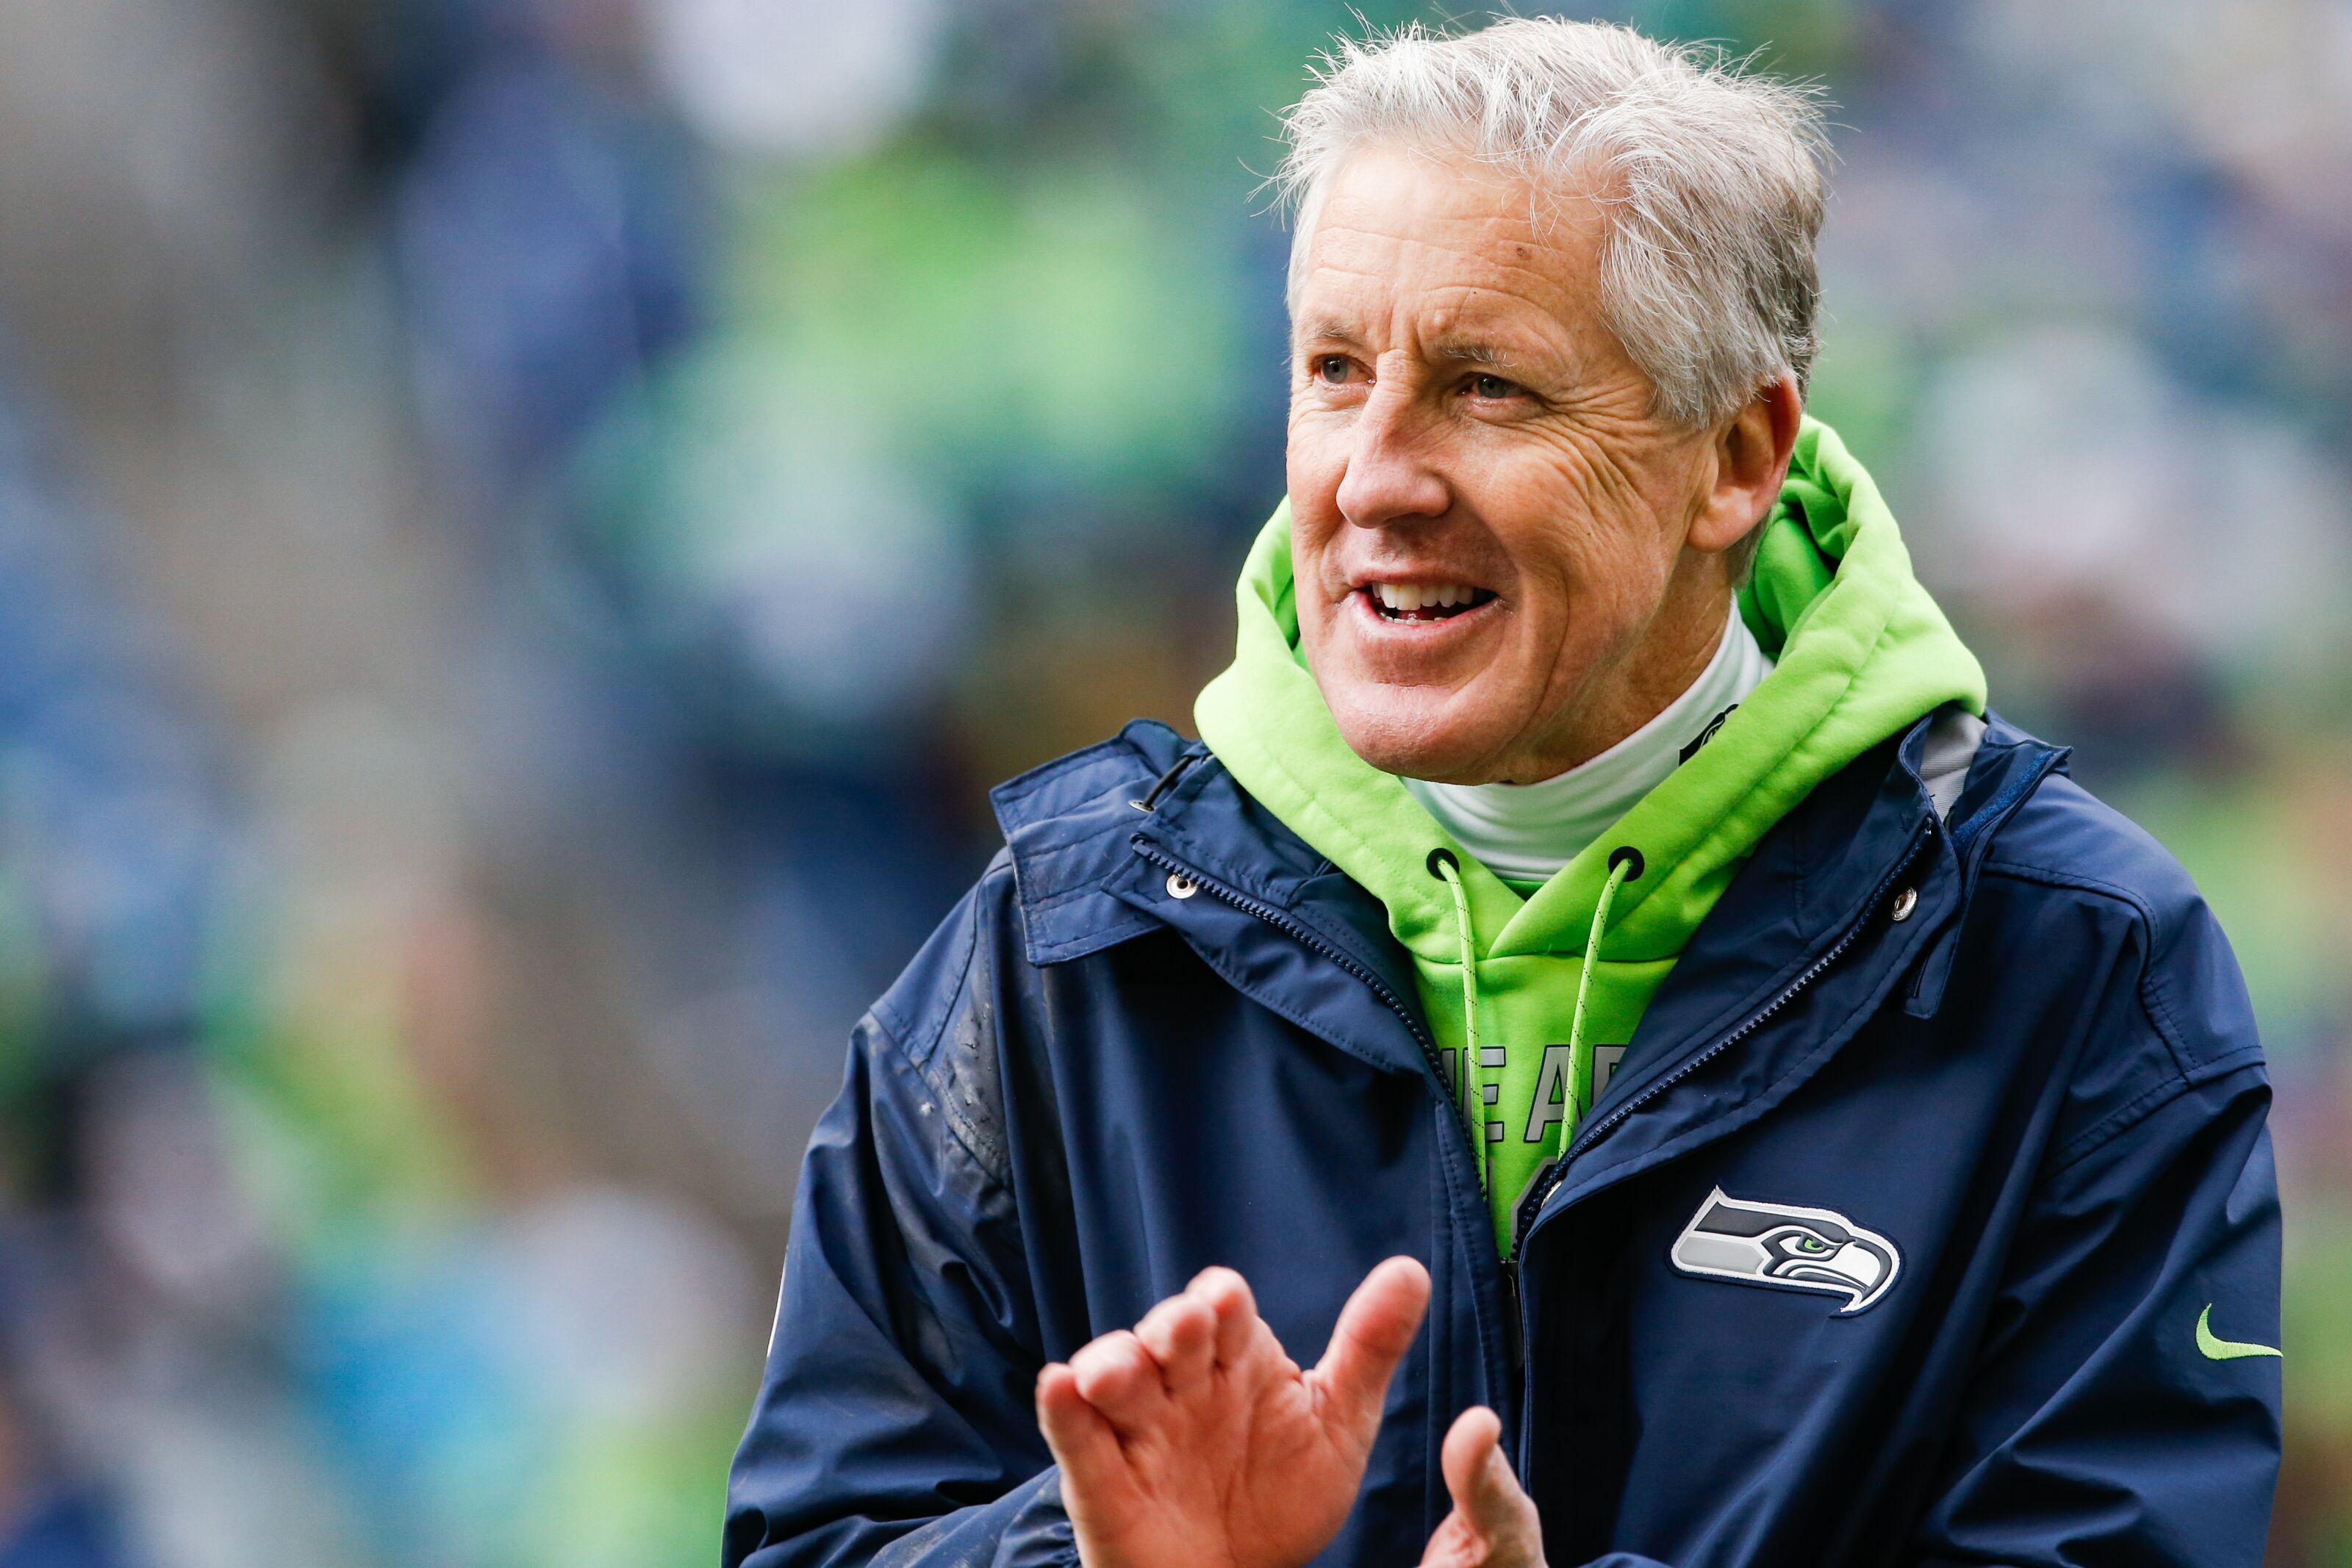 12 quick reasons for Seahawks fans to be happy to start 2019